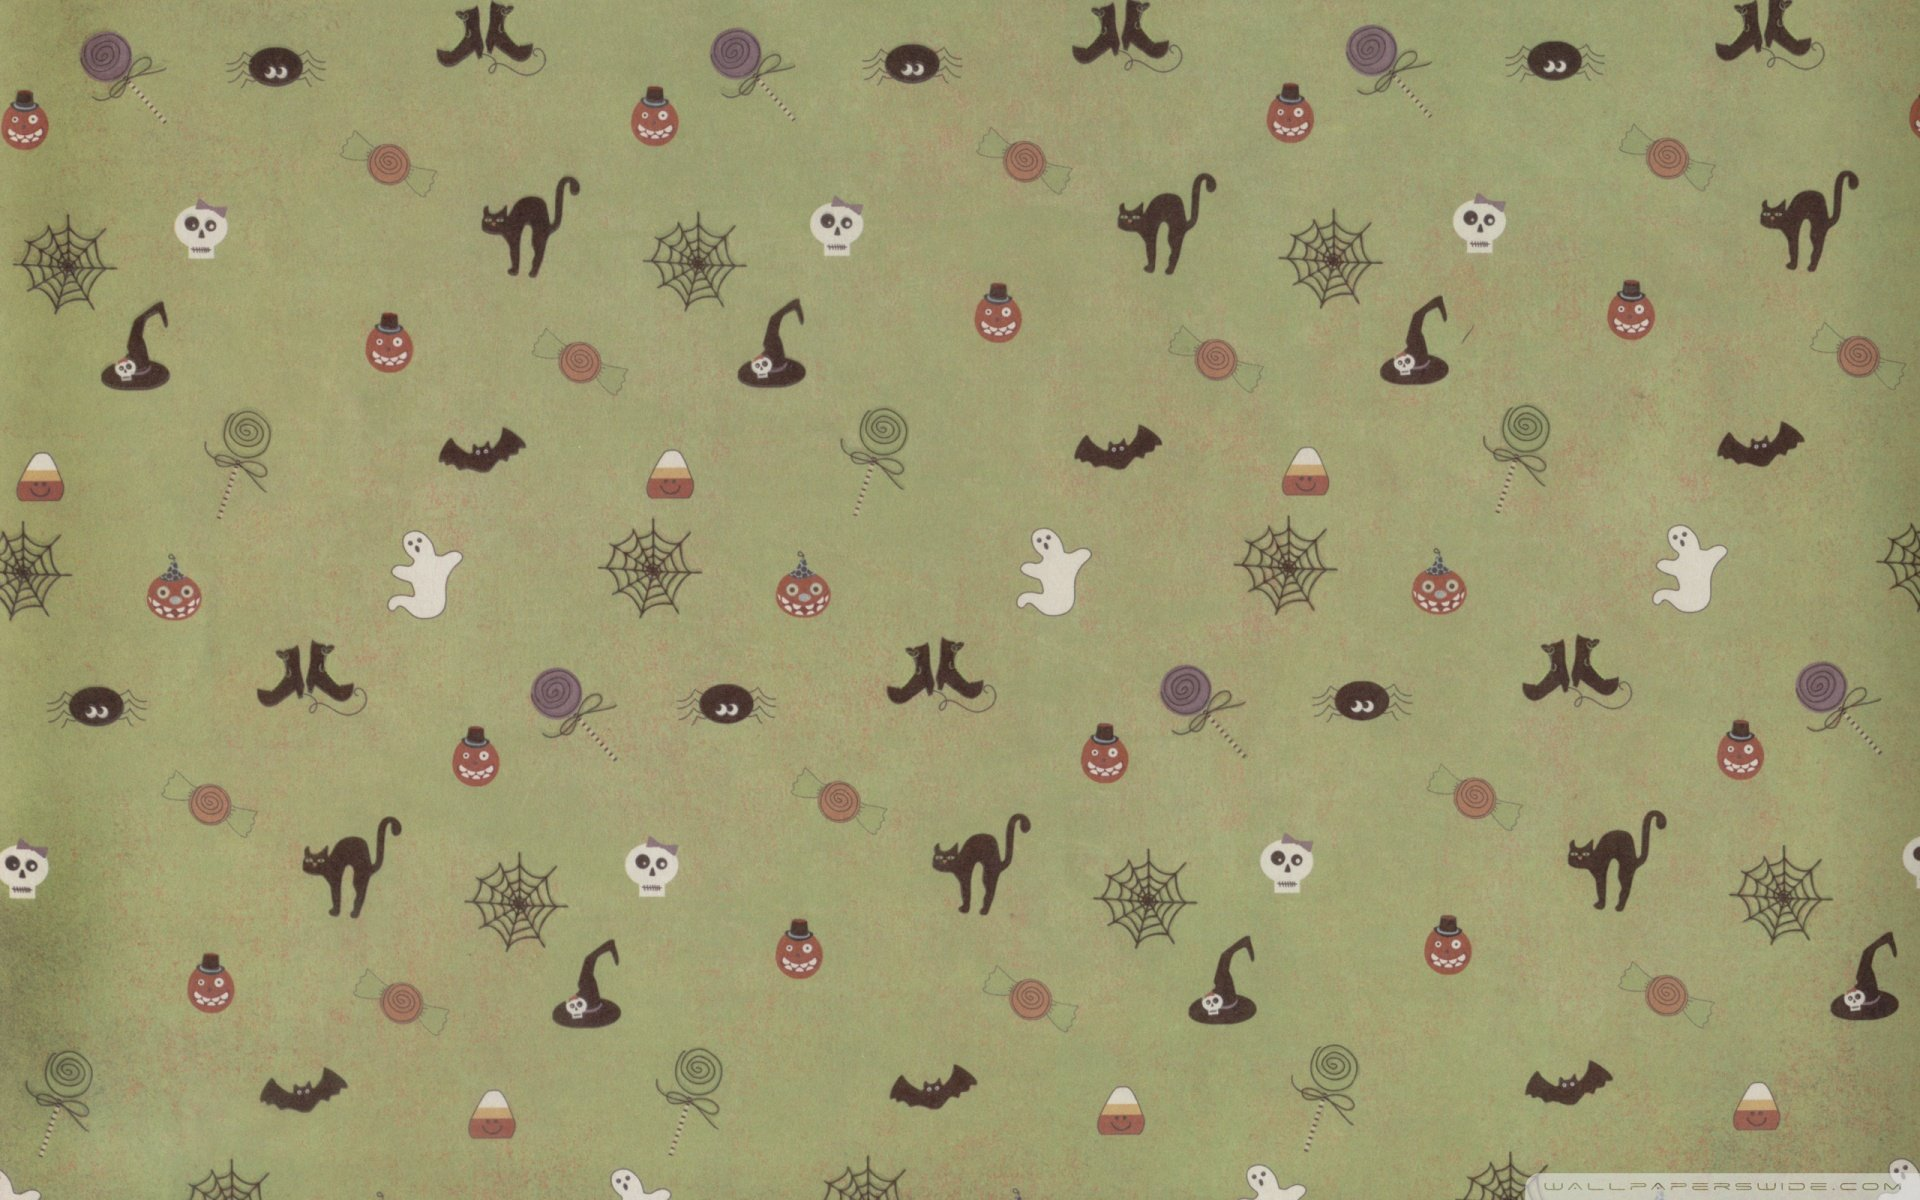 100+ Halloween 2017 Background: Desktop, Cute, Tumblr, Scary And